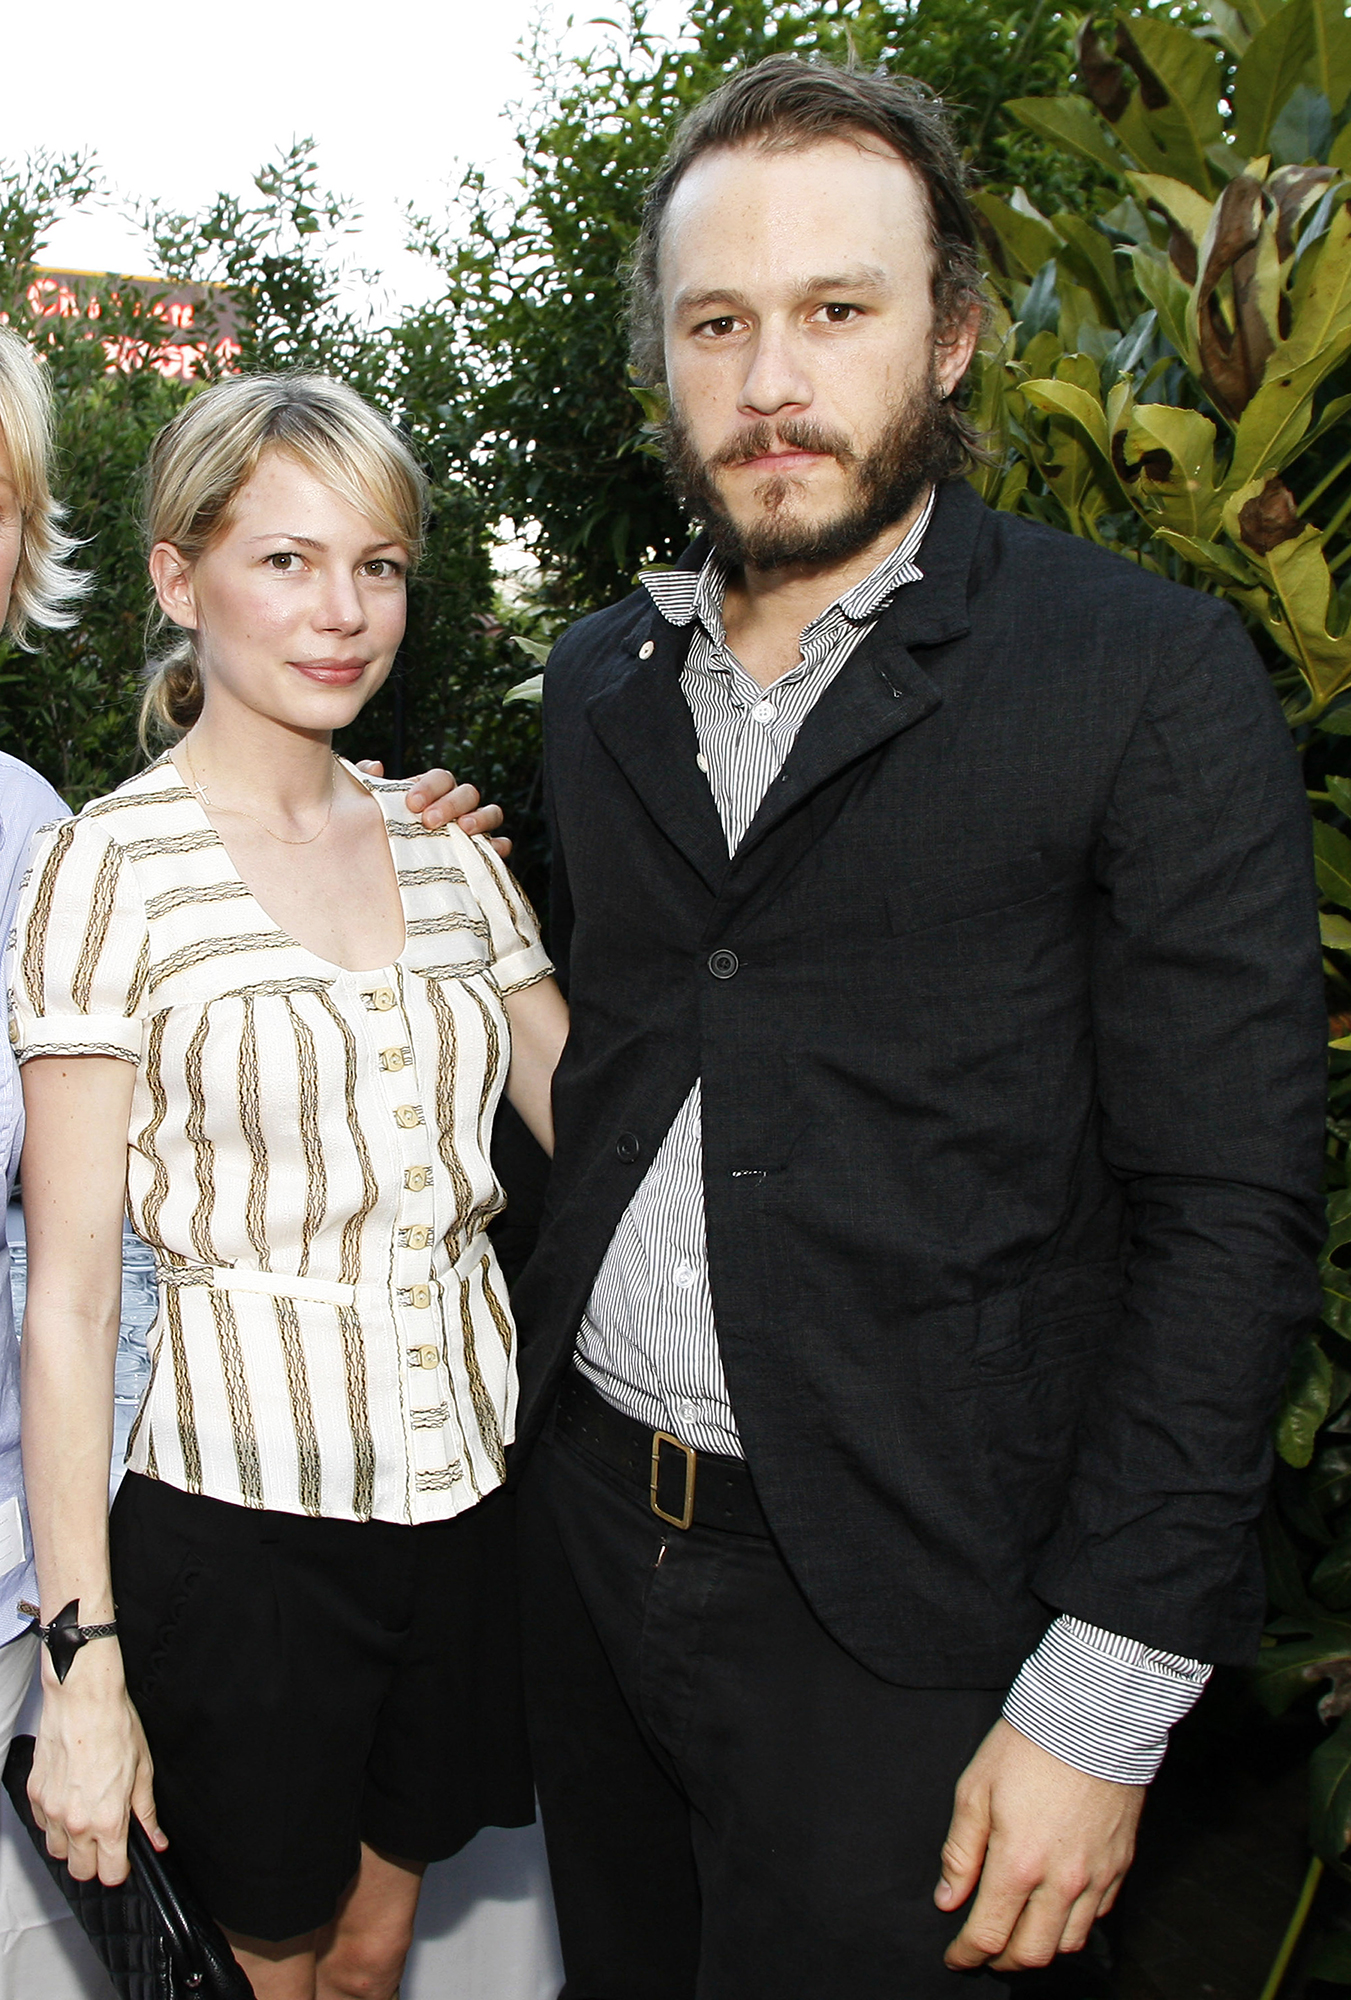 Michelle Williams Shares Update on Daughter Matilda on Heath Ledger's 40th Birthday - Michelle Williams and Heath Ledger.